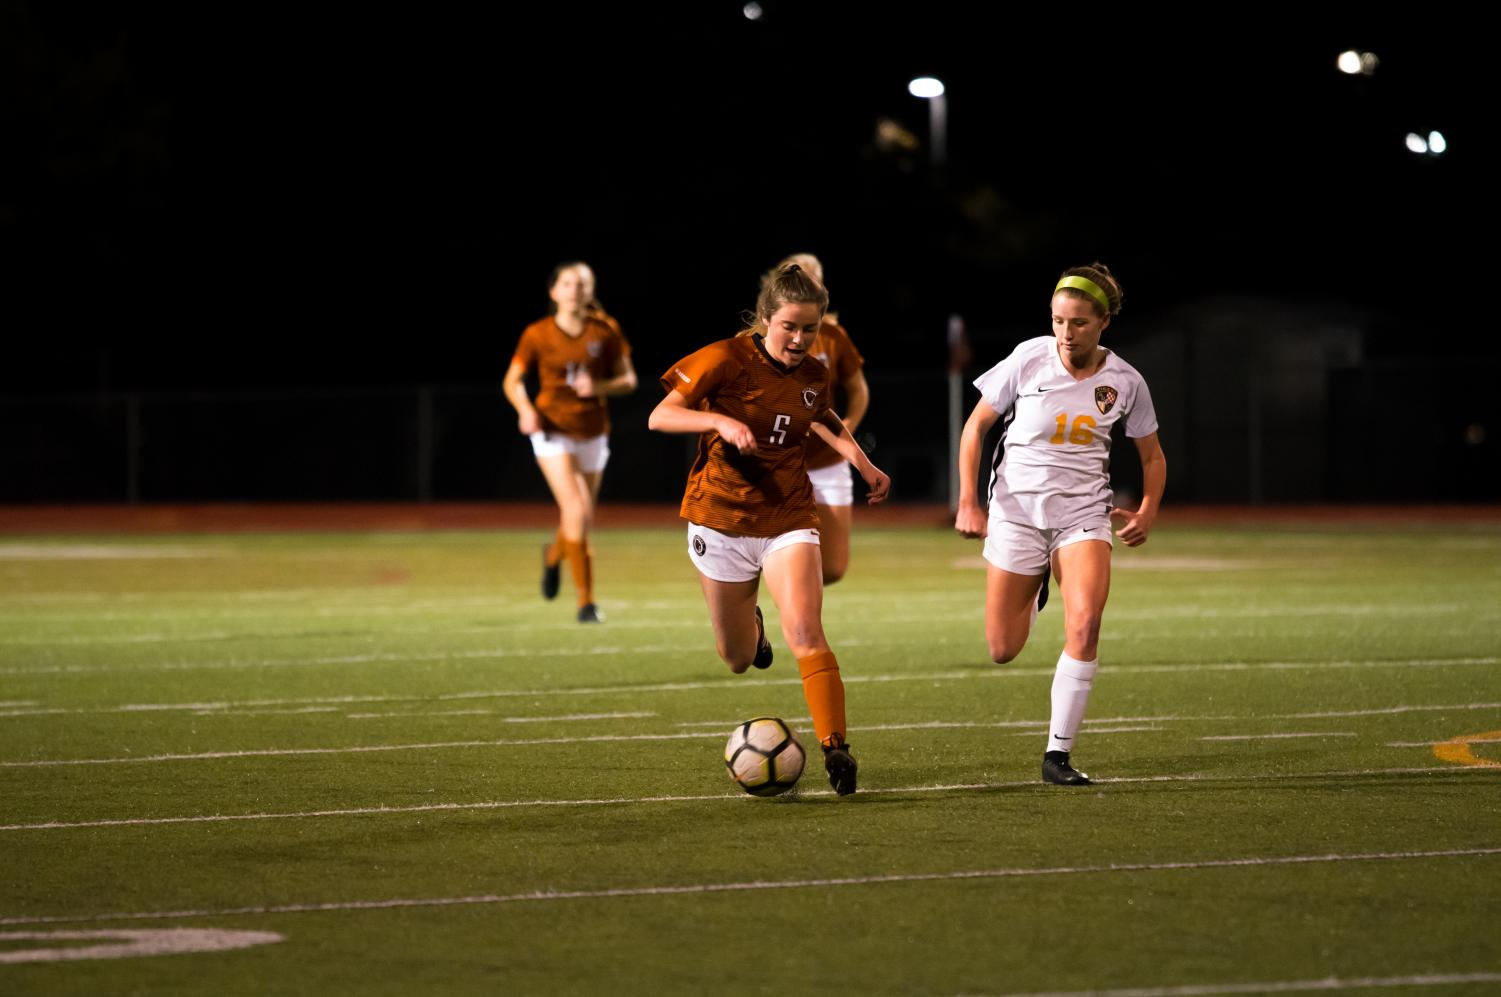 With+an+opposing+midfielder+by+her+side%2C+Sarah+Kolodzinski+%2722+dribbles+the+ball+downfield.+Kolodzinski+would+be+edged+out%2C+losing+possession+of+the+ball.